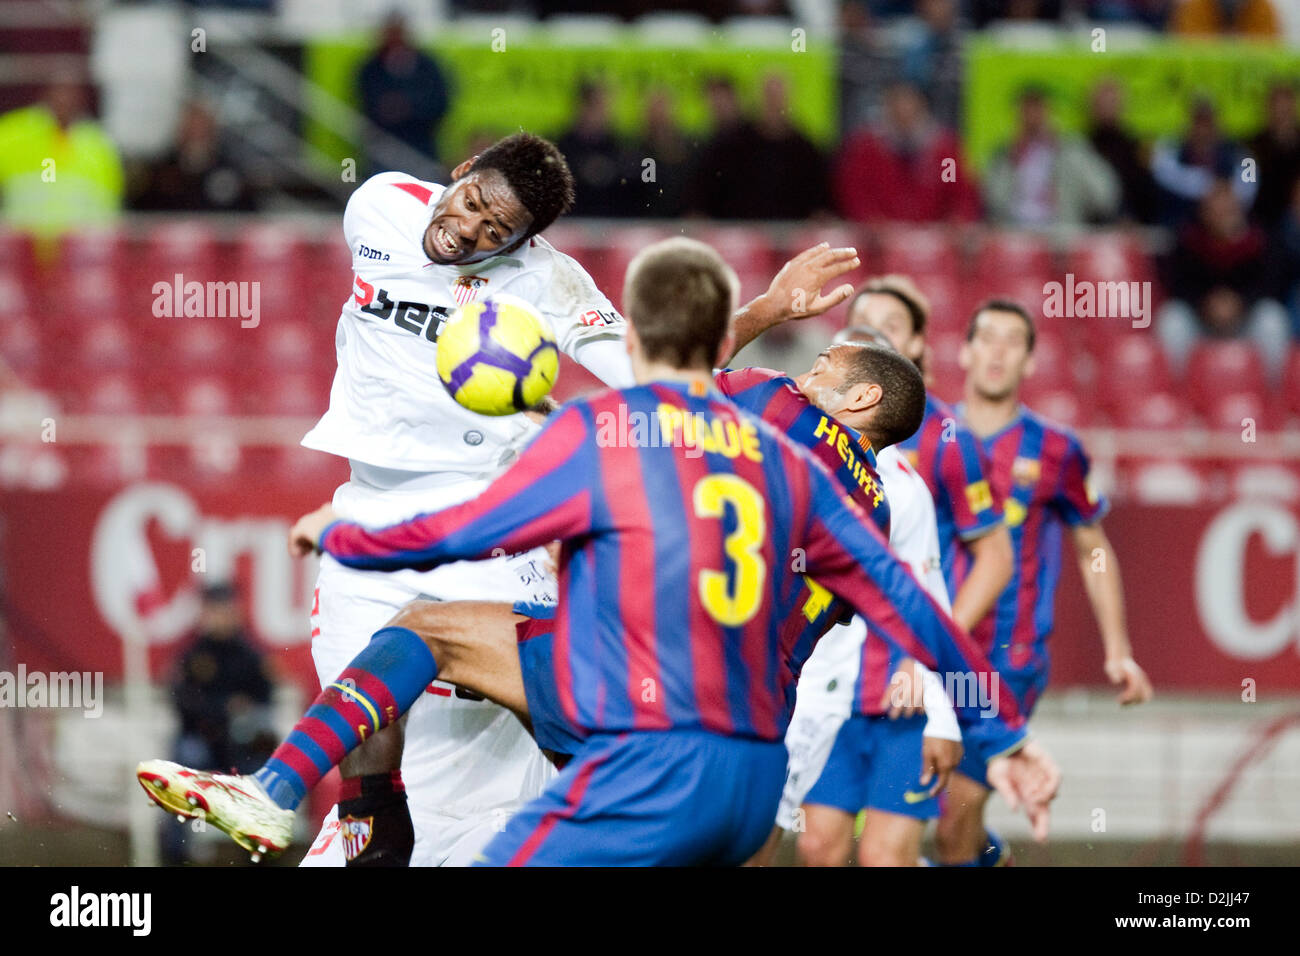 Seville, Spain, the game Sevilla FC against FC Barcelona at the Copa del Rey - Stock Image